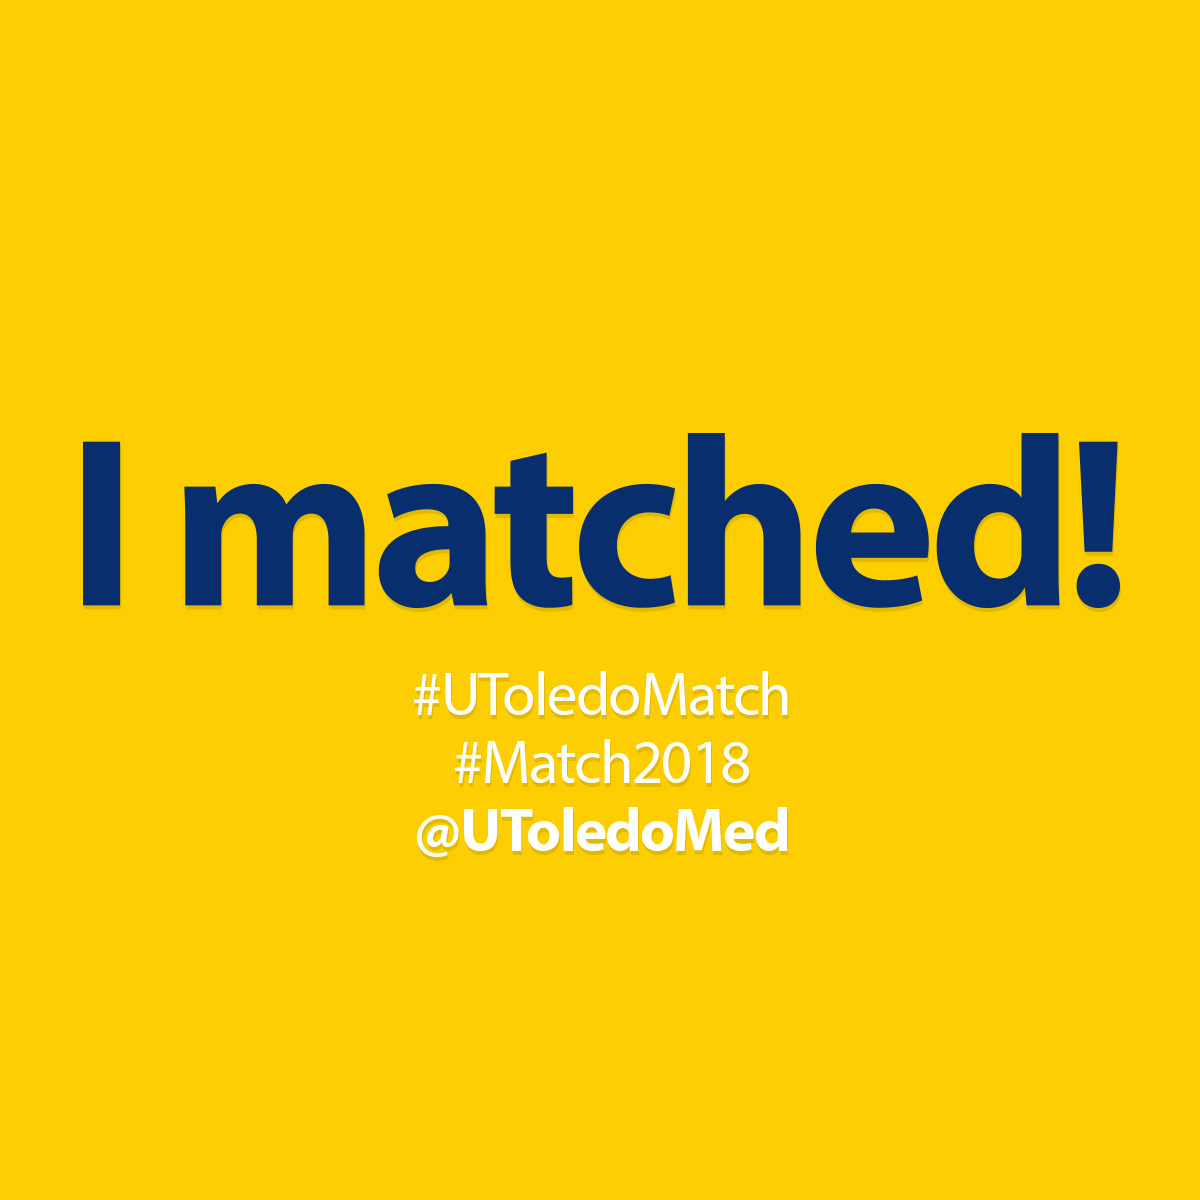 Match Day 2018 social media image